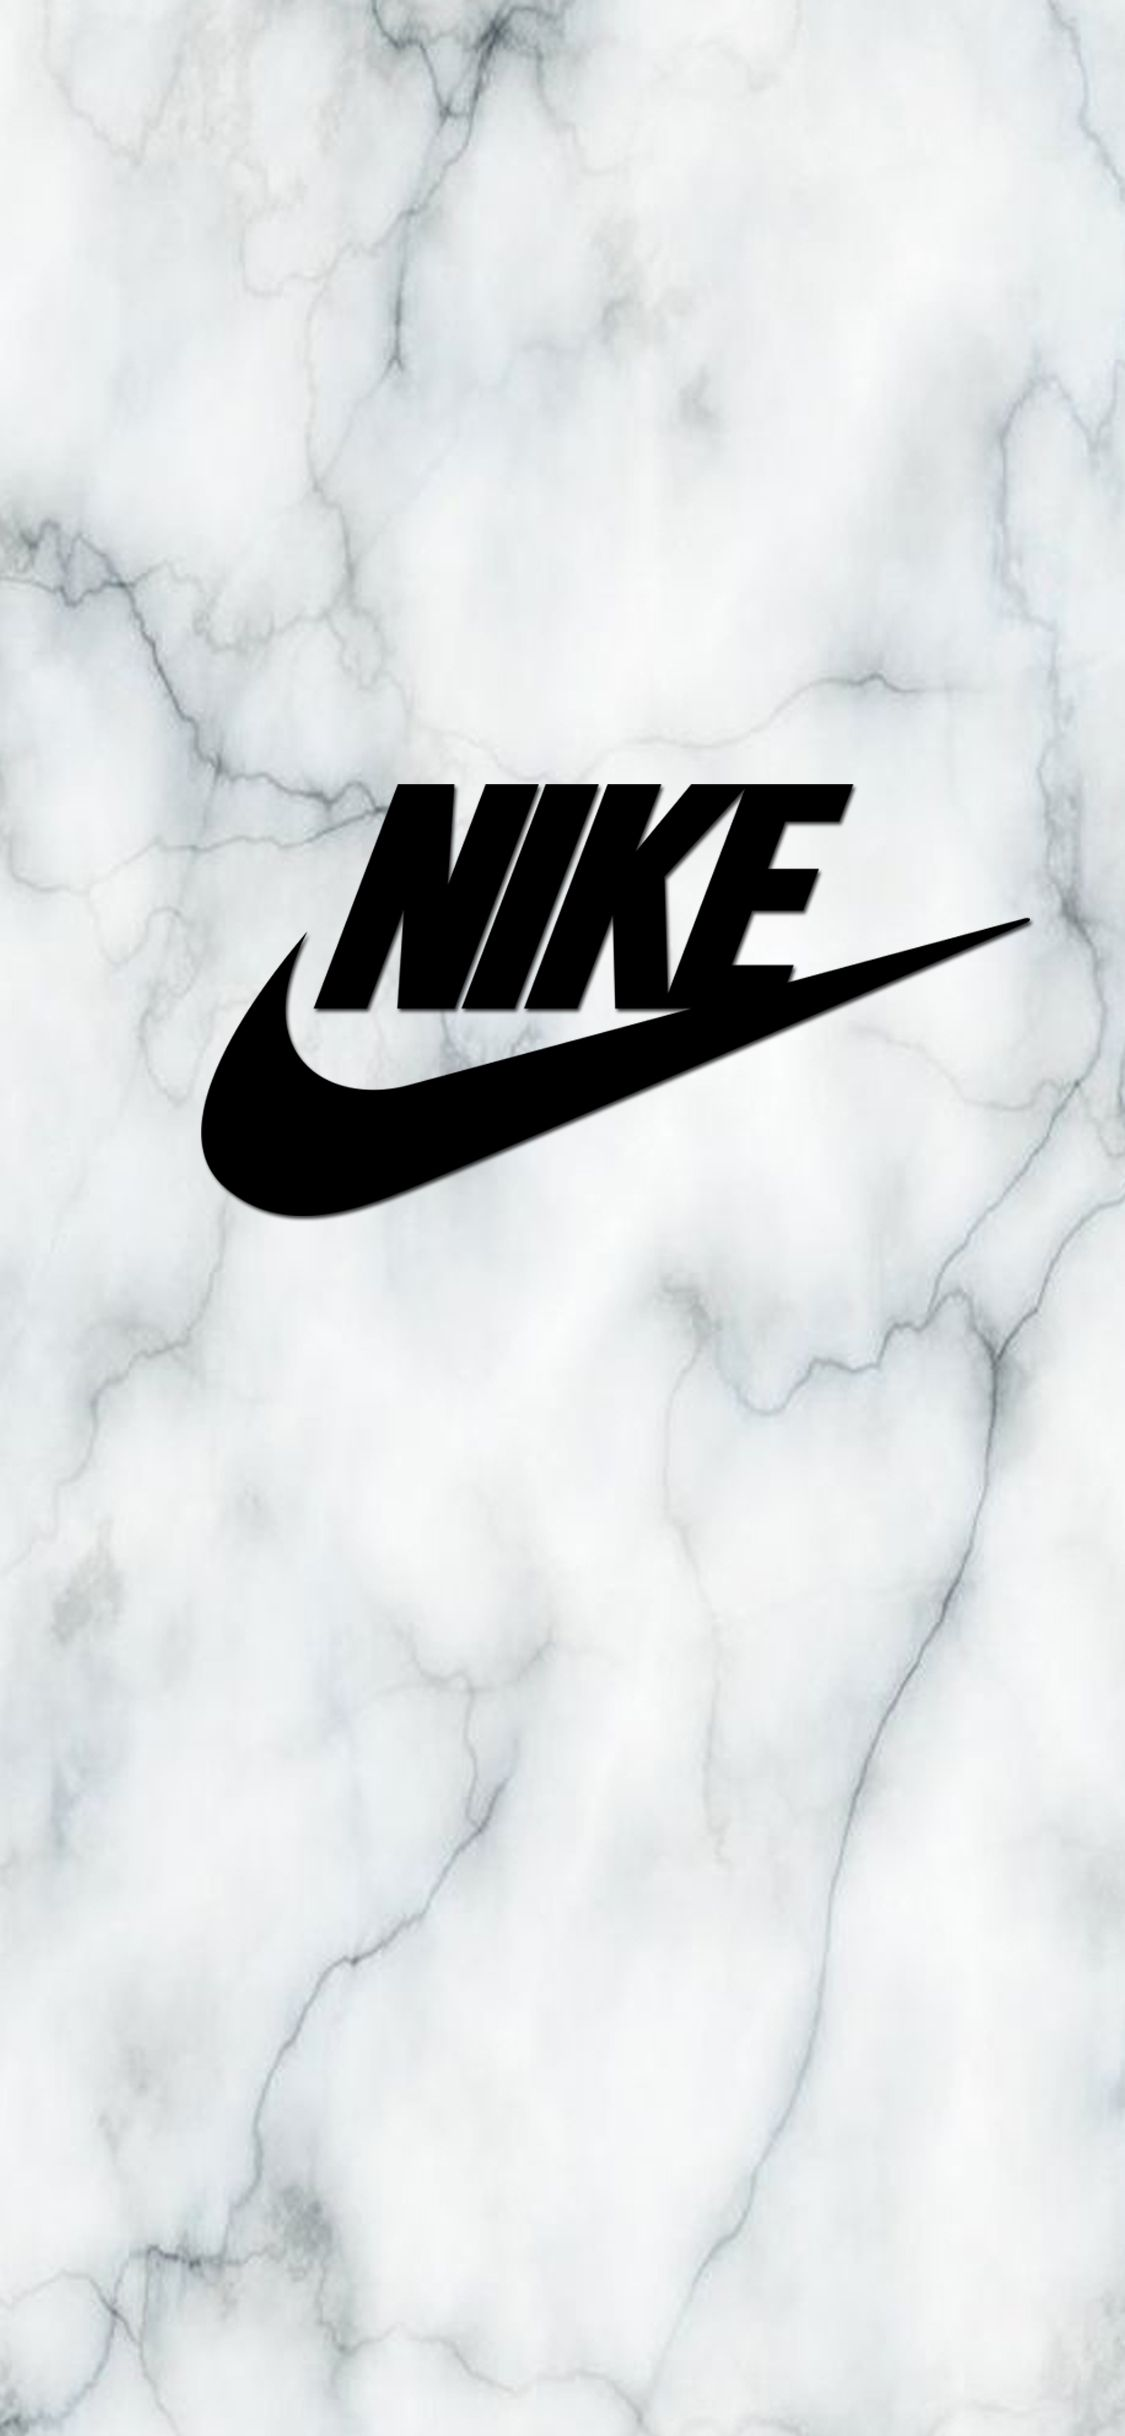 Nike Iphone X Wallpaper You Can Order Iphone Case With This Picture